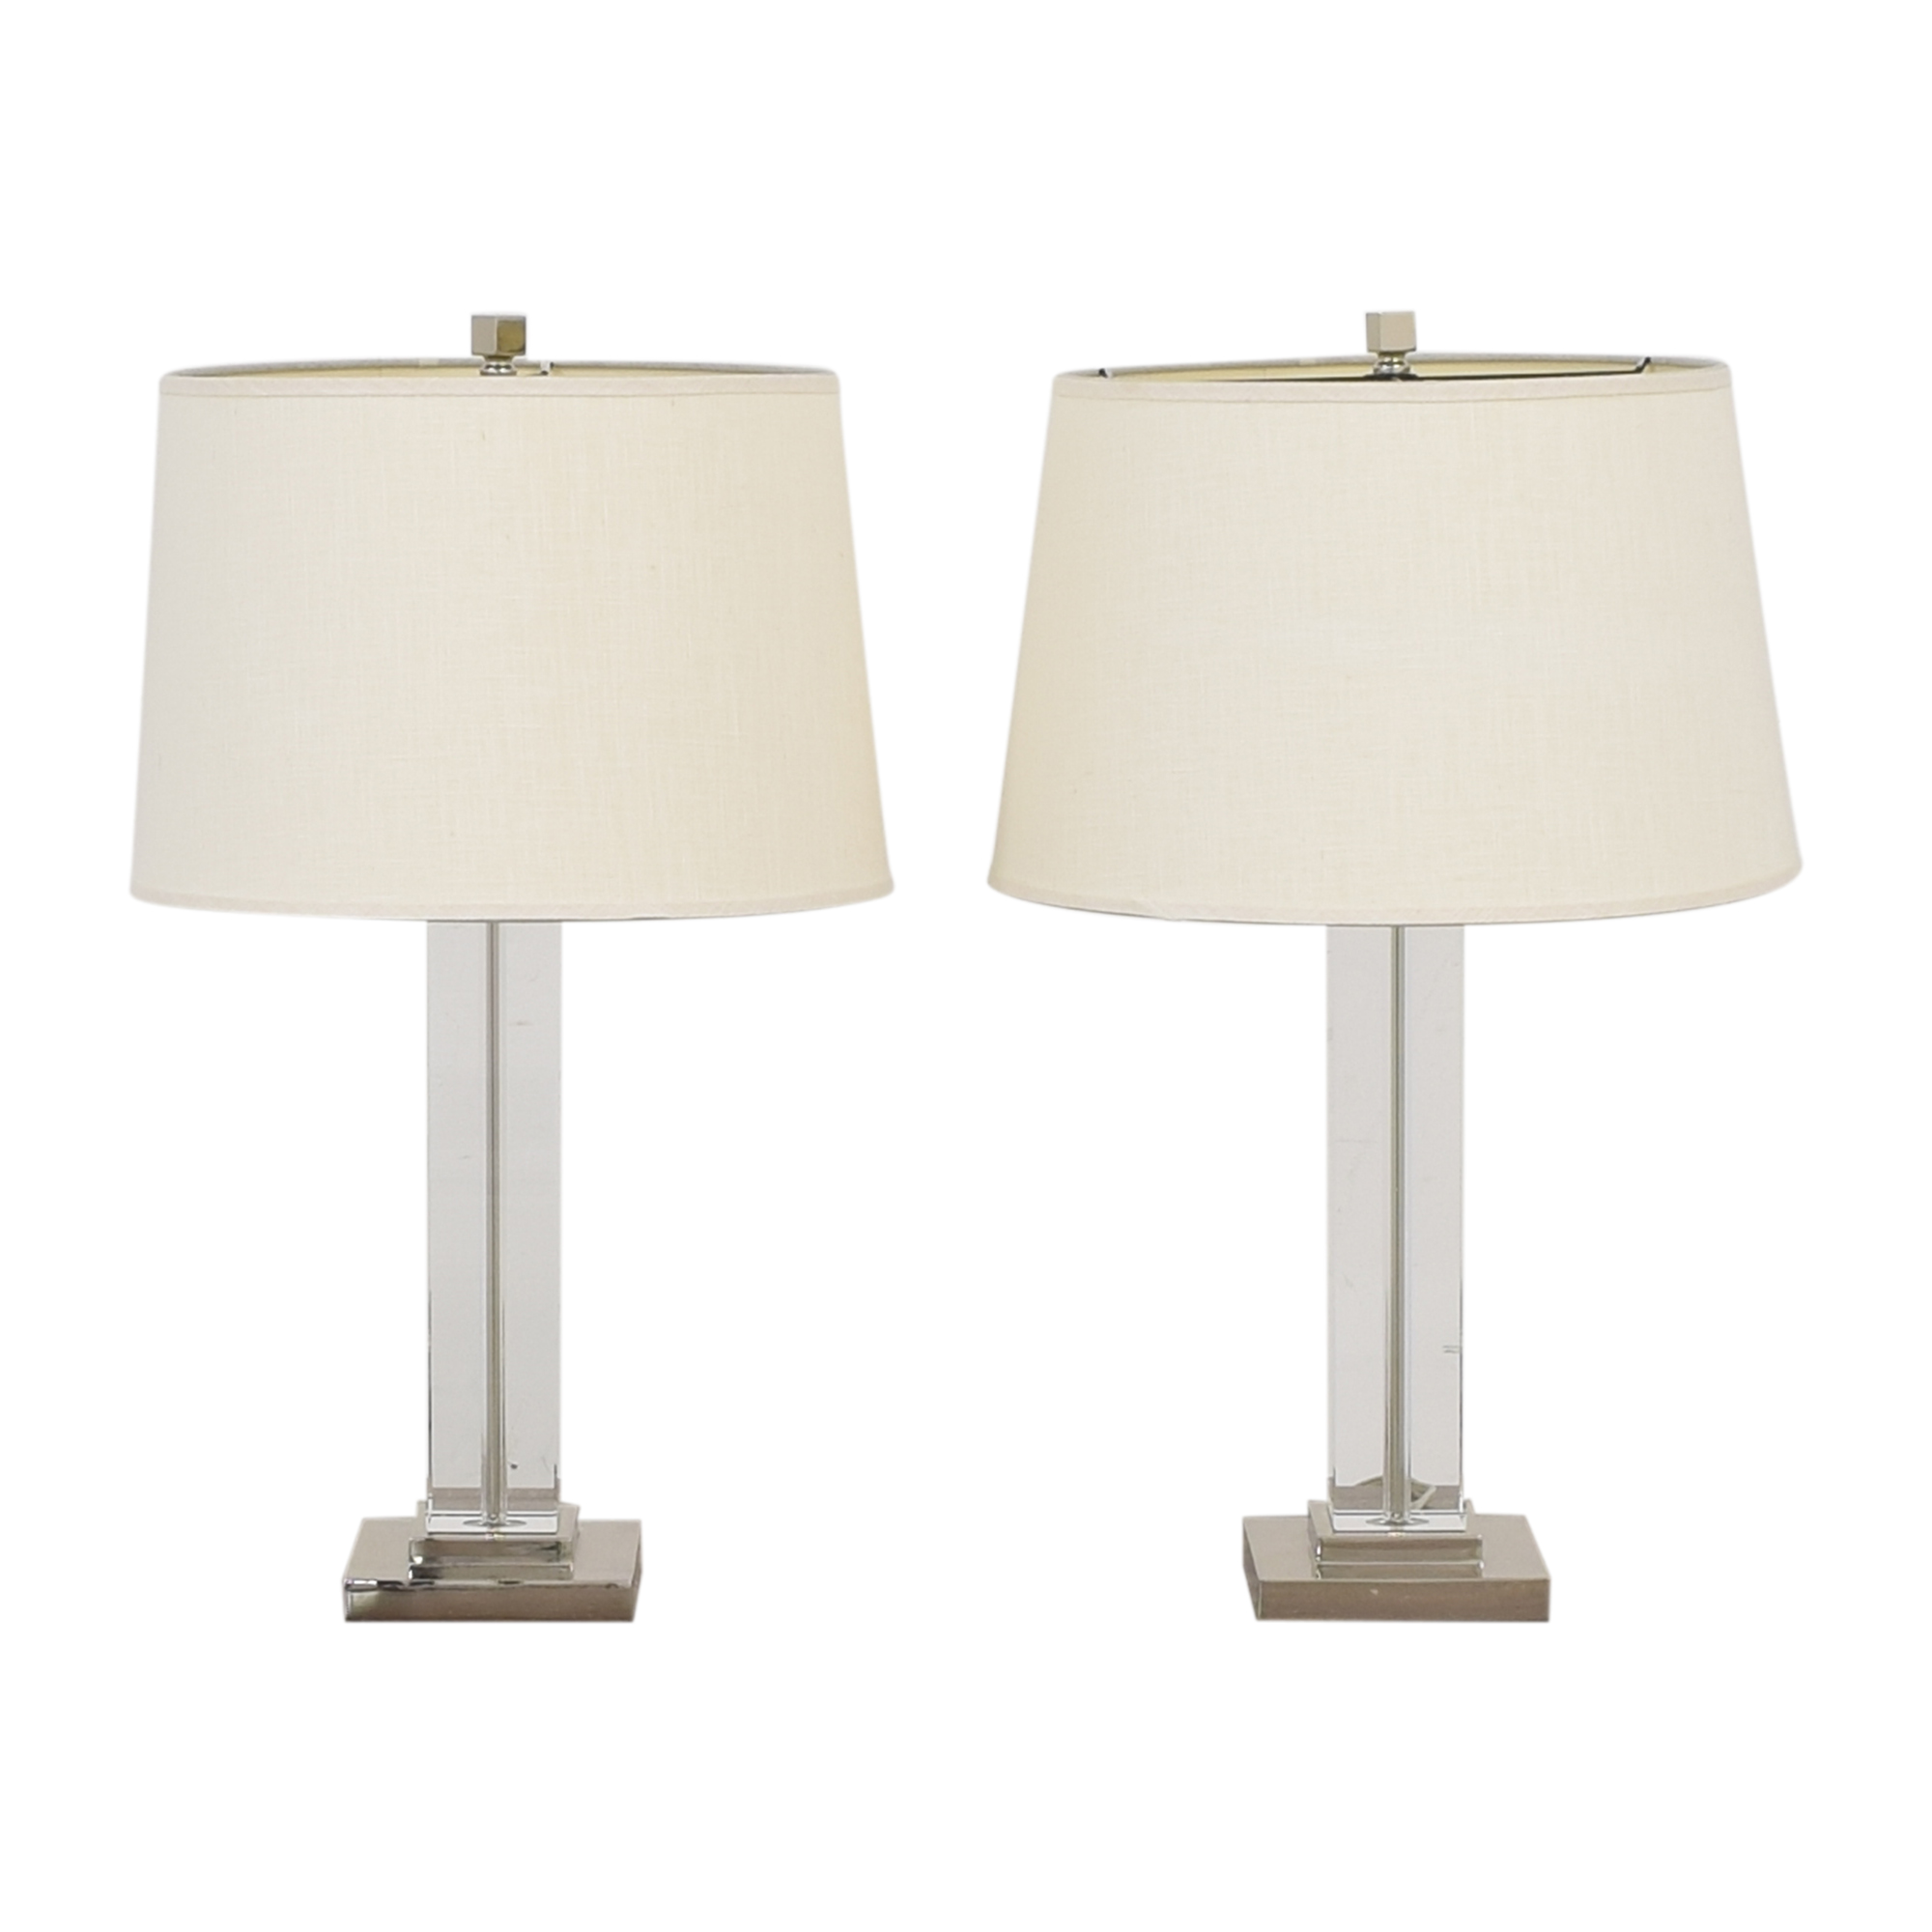 Pottery Barn Pottery Barn Table Lamps nj